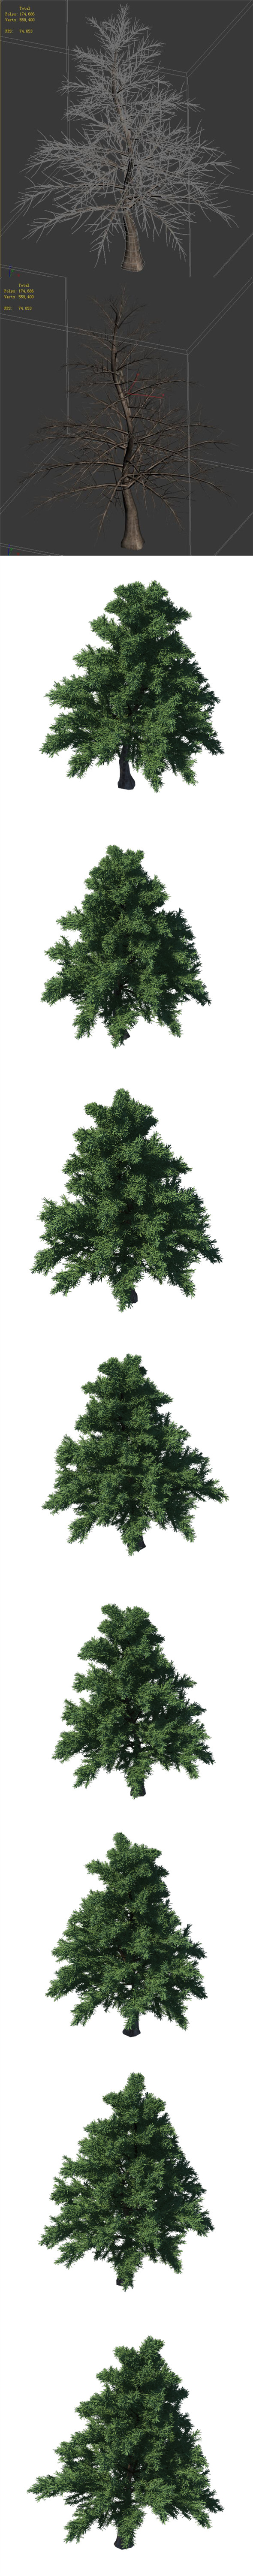 Plant - Pine 36 - 3DOcean Item for Sale